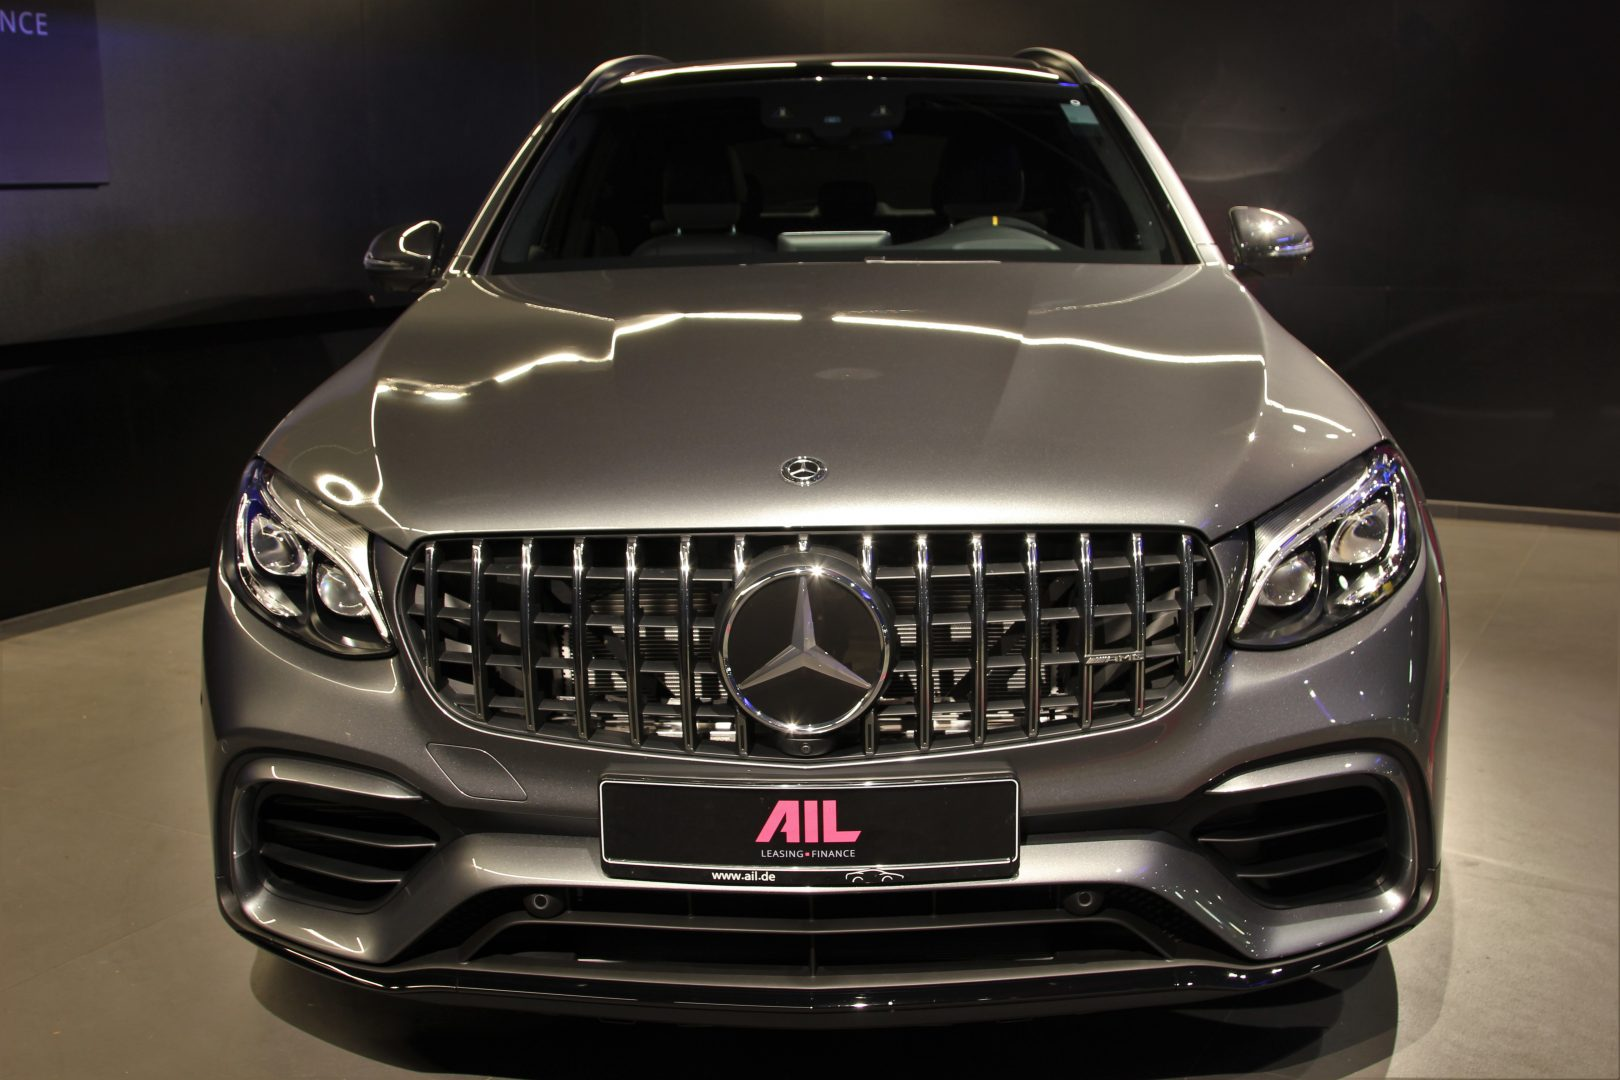 AIL Mercedes-Benz GLC 63 S AMG Edition 1 / CARBON / AMG TRACK 2